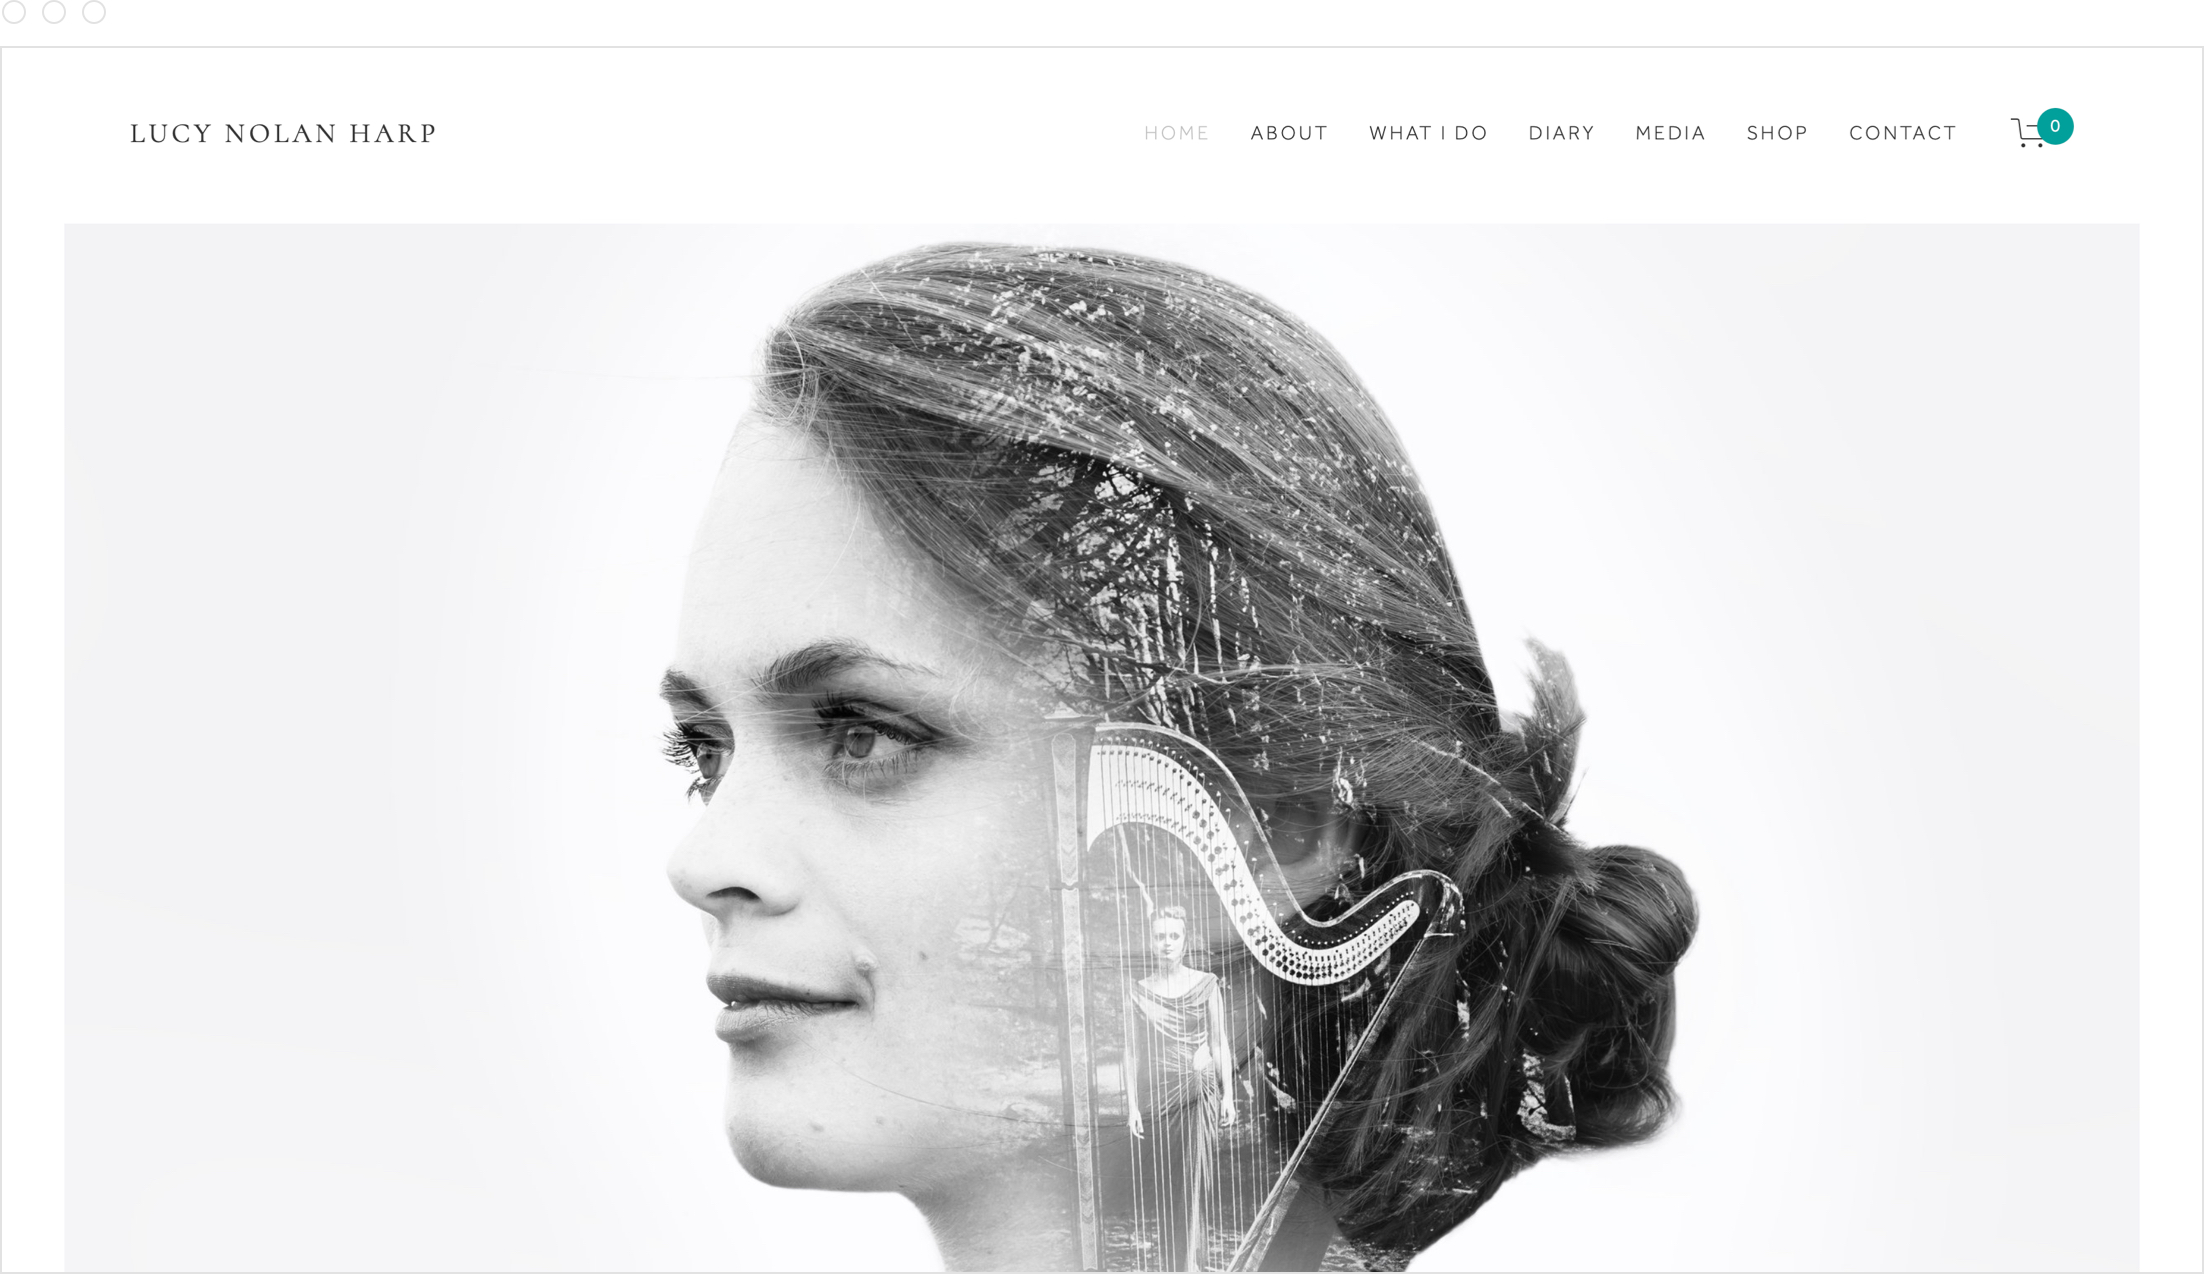 Home page and website design by Jack Watkins for award-winning classical musician and harpist, Lucy Nolan